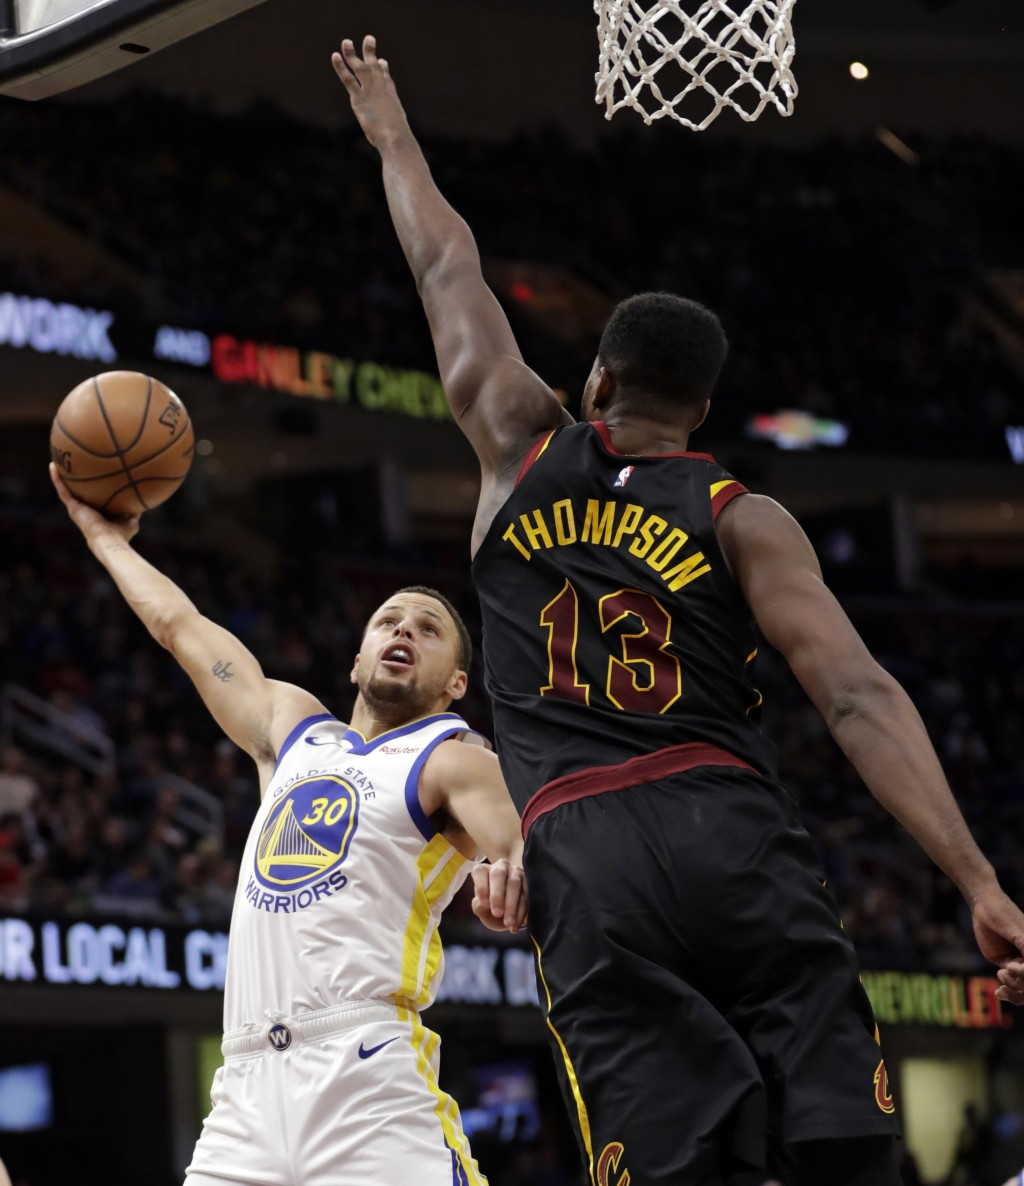 Golden State Warriors' Stephen Curry, left, drives to the basket against Cleveland Cavaliers' Tristan Thompson in the second half of an NBA basketball